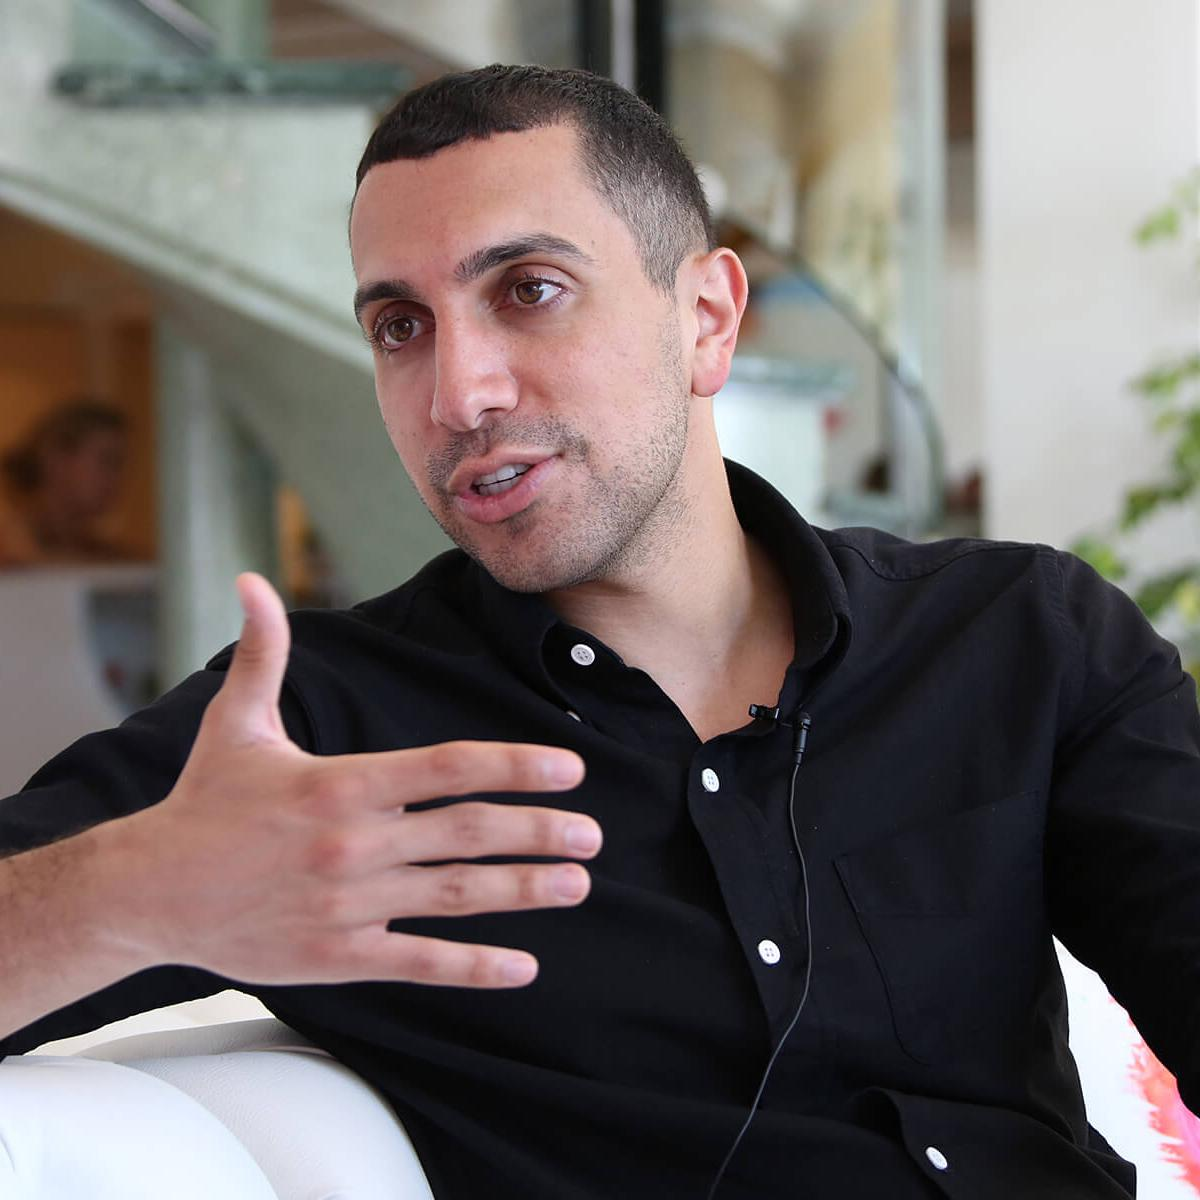 Photograph of Sean Rad (founder of Tinder) by Julian Hanford at Cannes Lions 2017